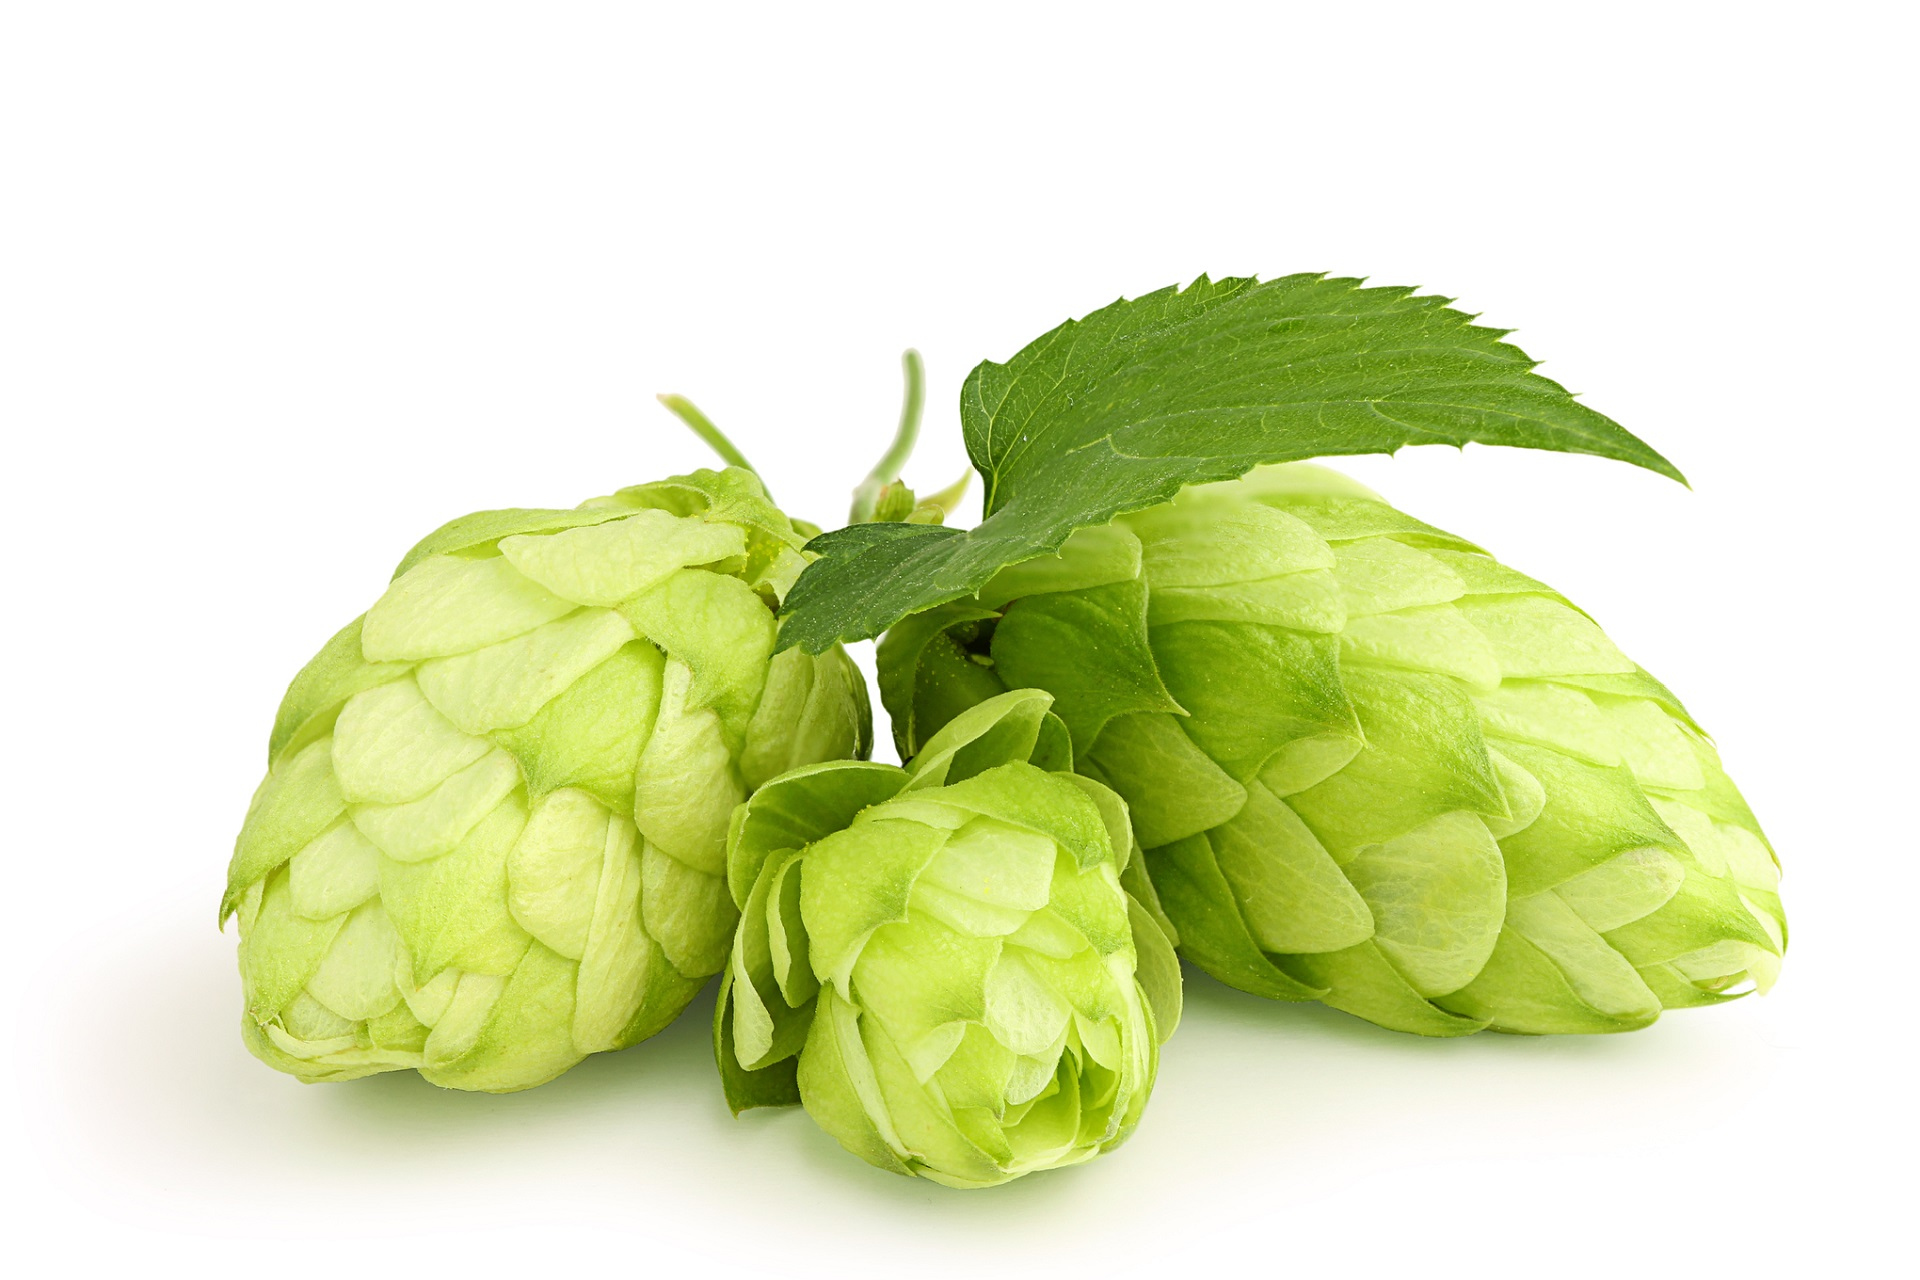 Hops extract studied to prevent breast cancer -- ScienceDaily